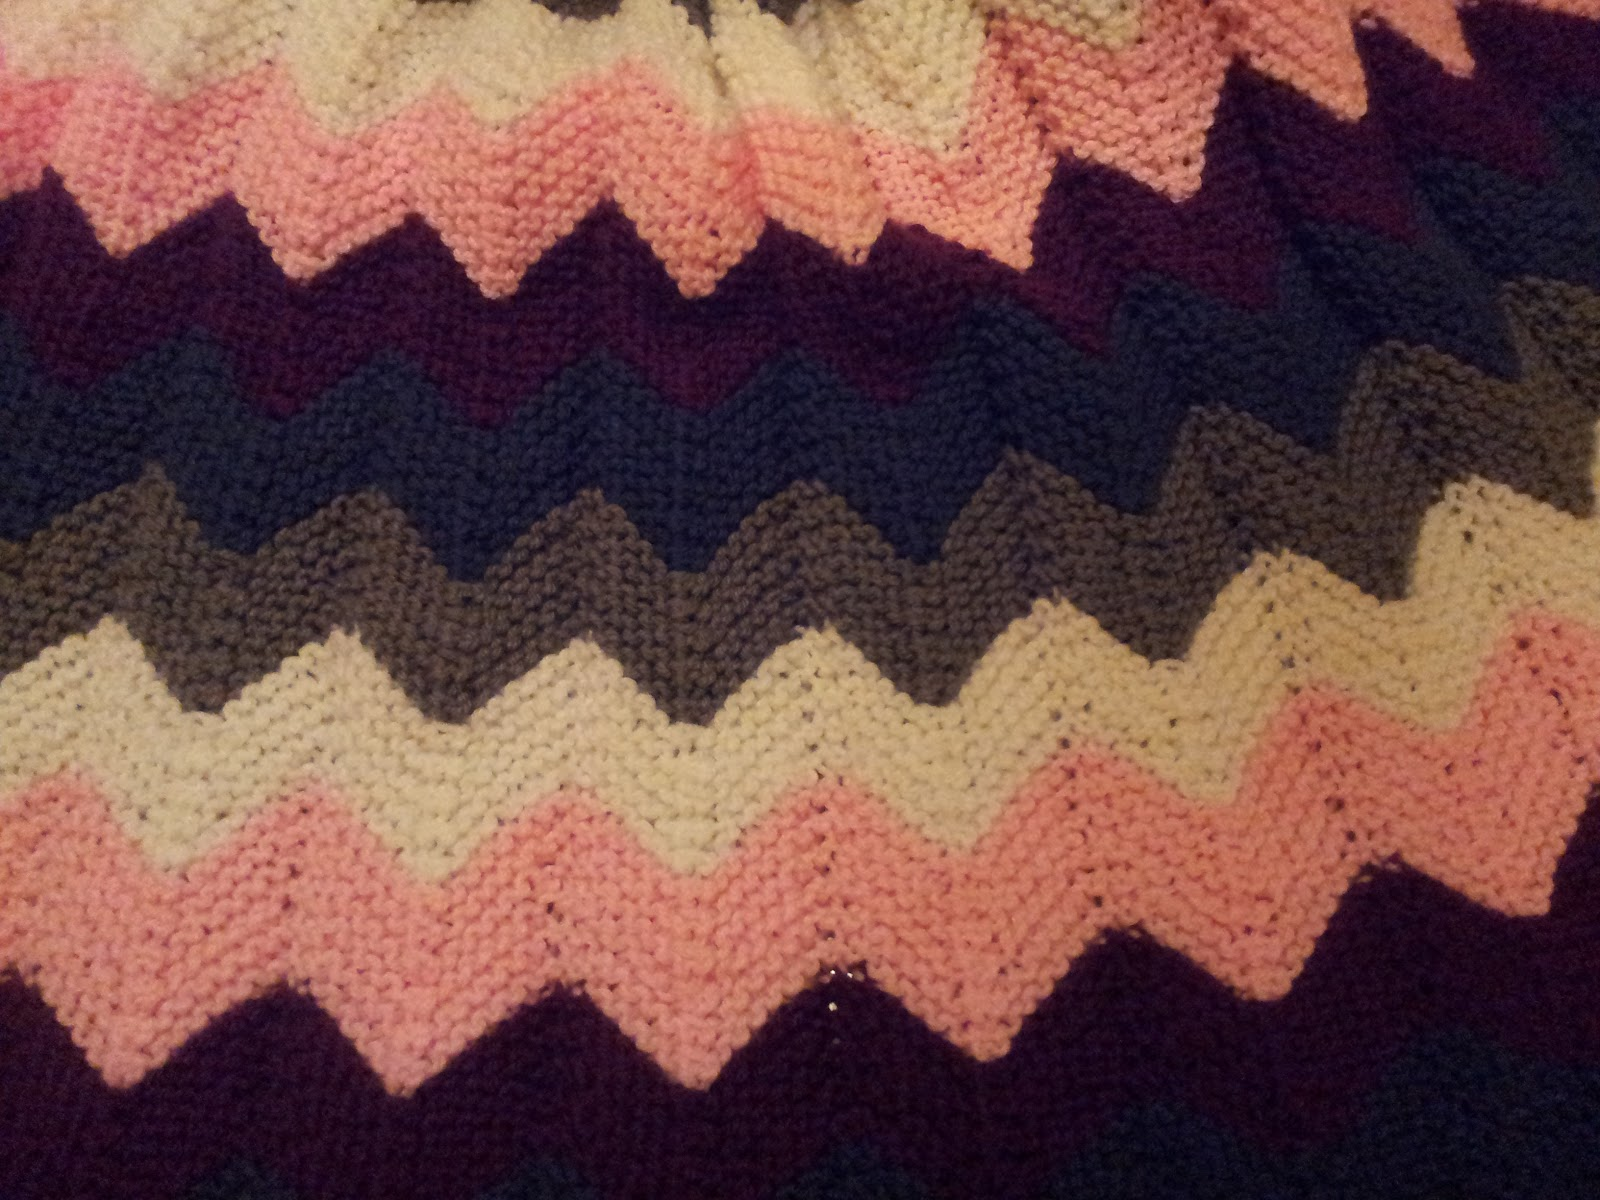 Knitting Pattern For Rippling Waves Afghan : Mosier Farms: Knitted Chevron (ripple) Afghan